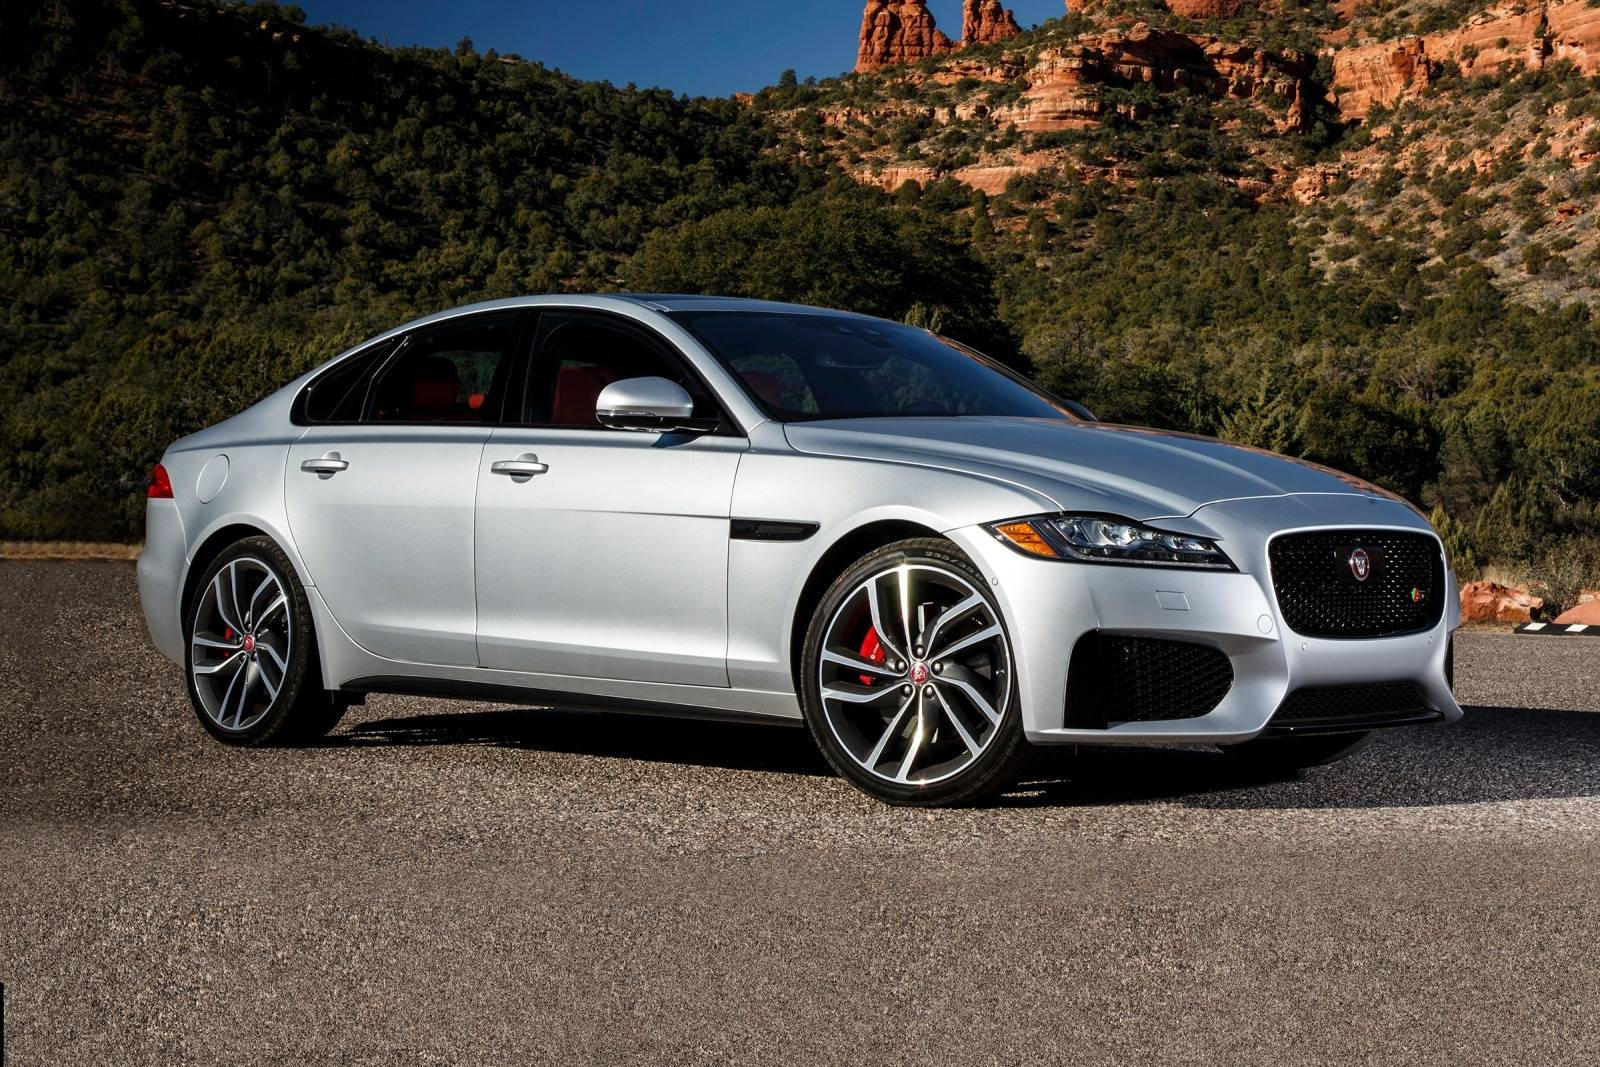 2018 jaguar xf sedan review trims specs and price carbuzz. Black Bedroom Furniture Sets. Home Design Ideas